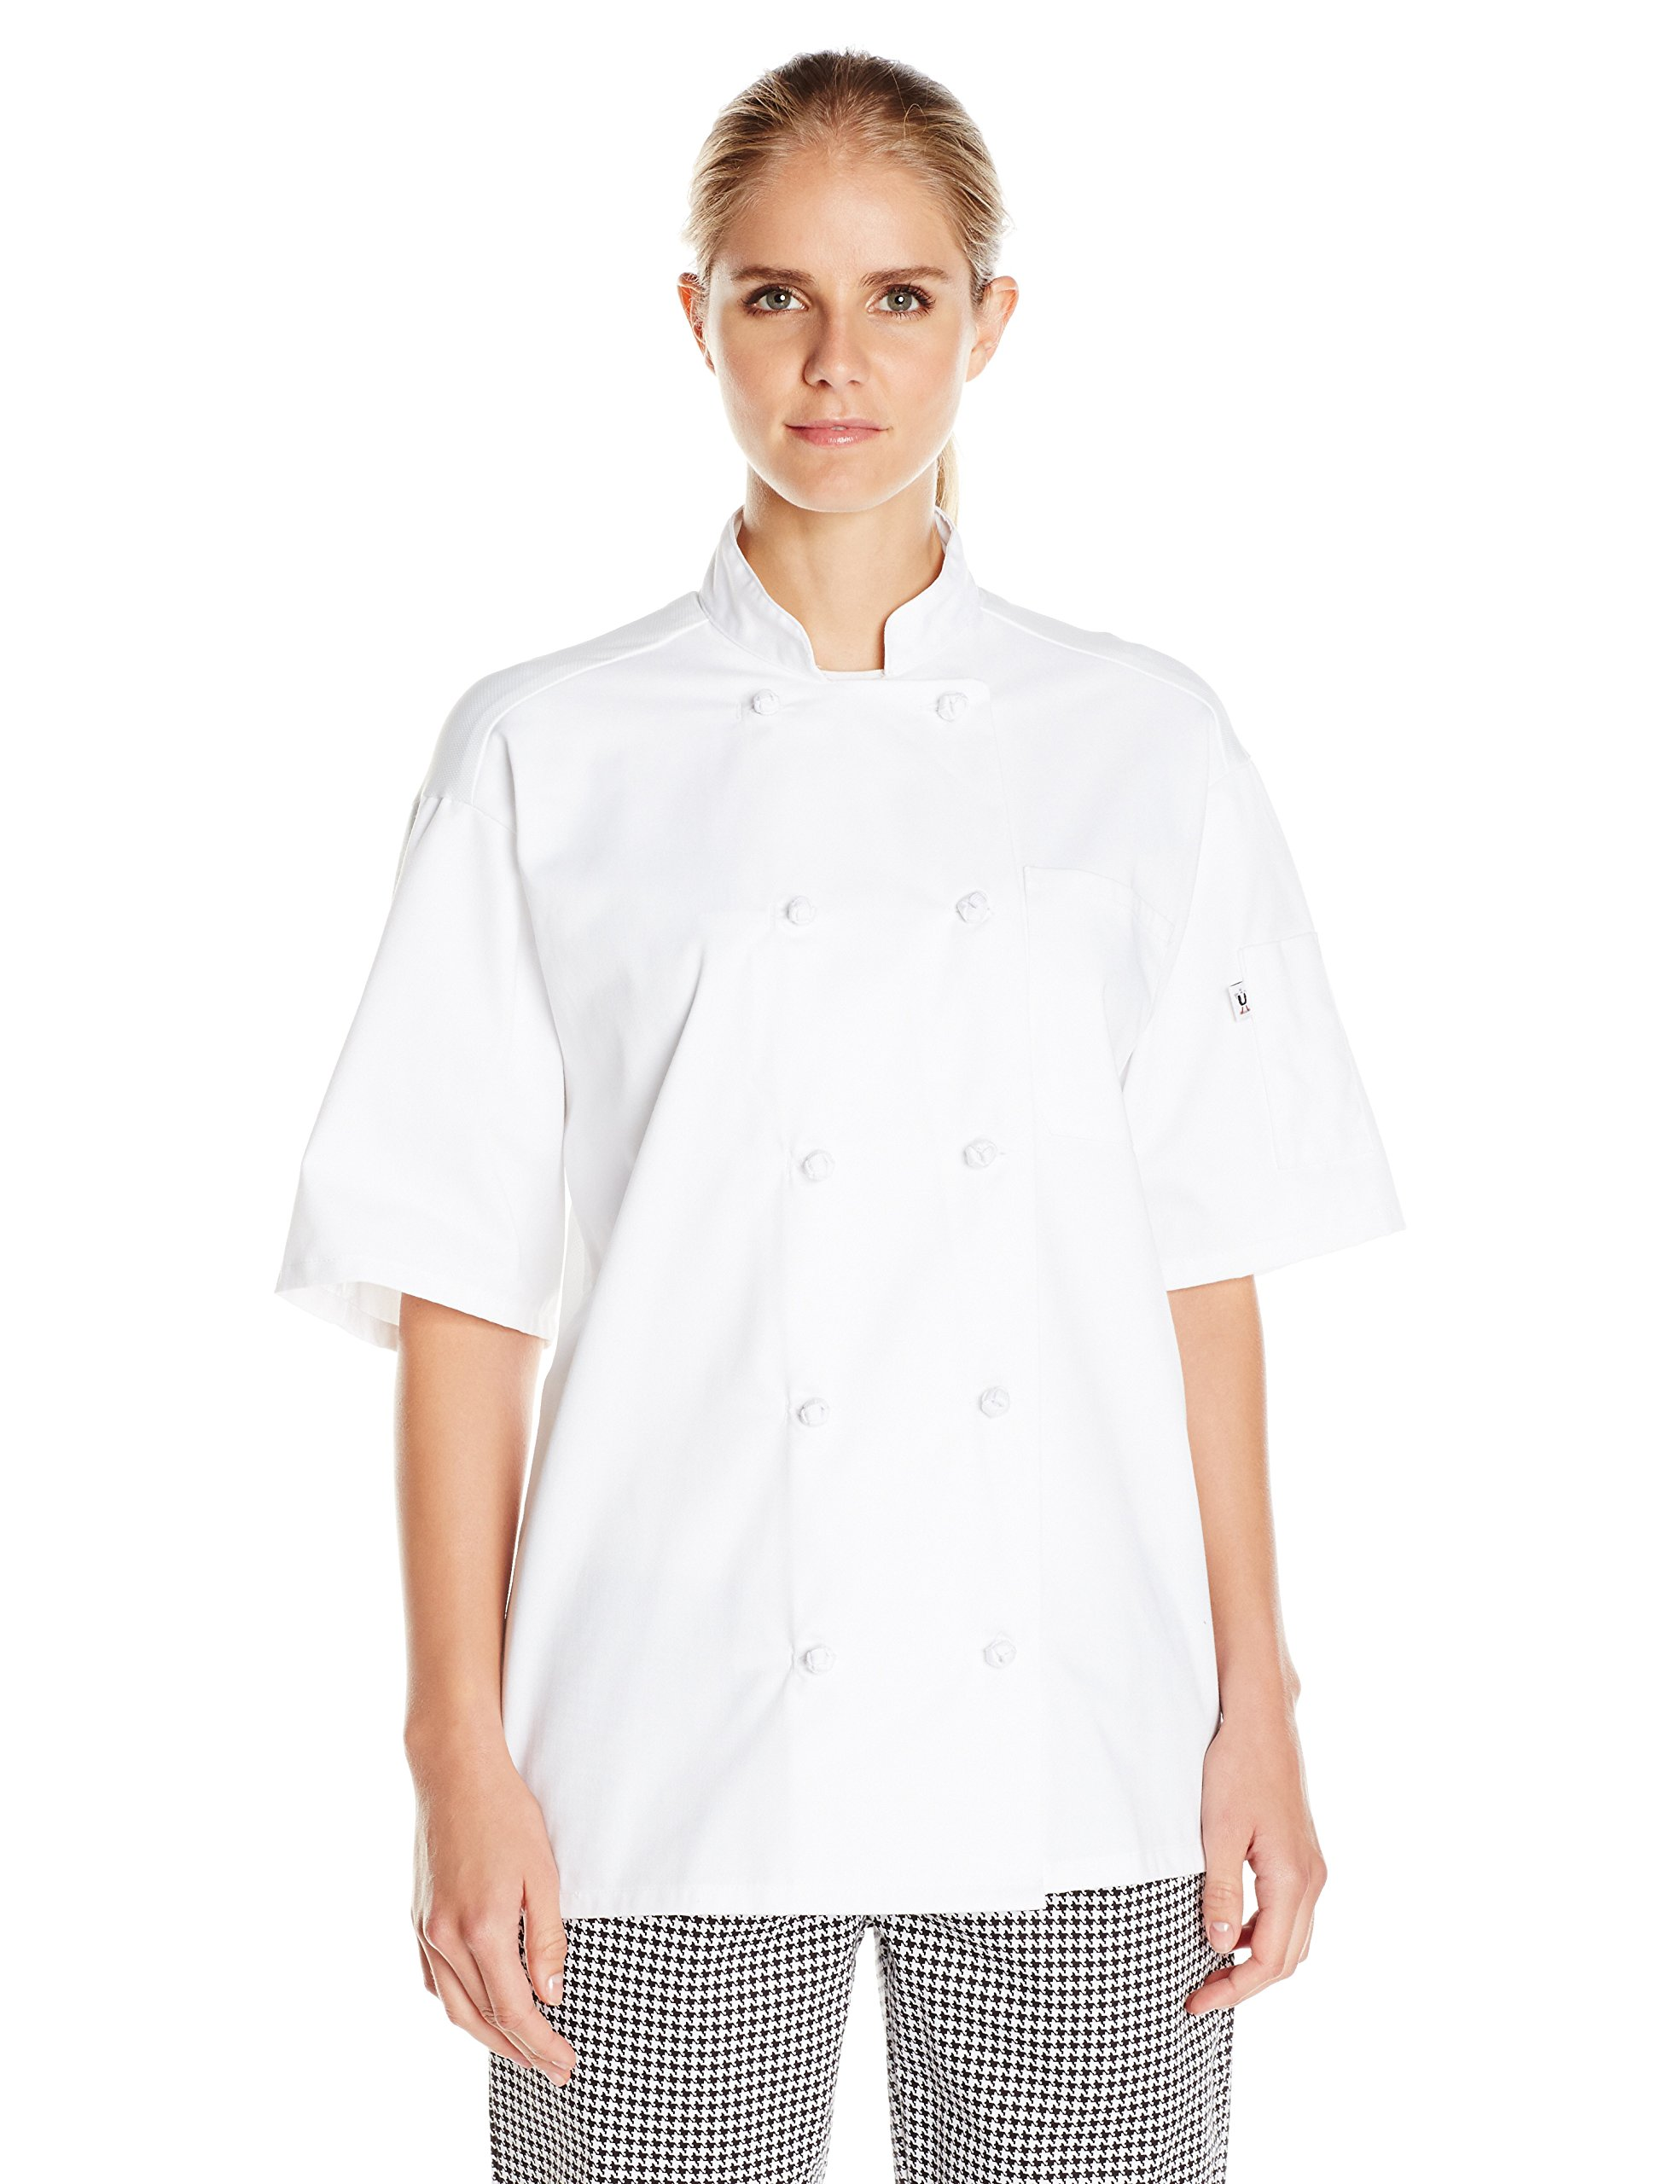 Uncommon Threads Unisex Antigua Chef Coat Ss Withmesh, White, X-Small by Uncommon Threads